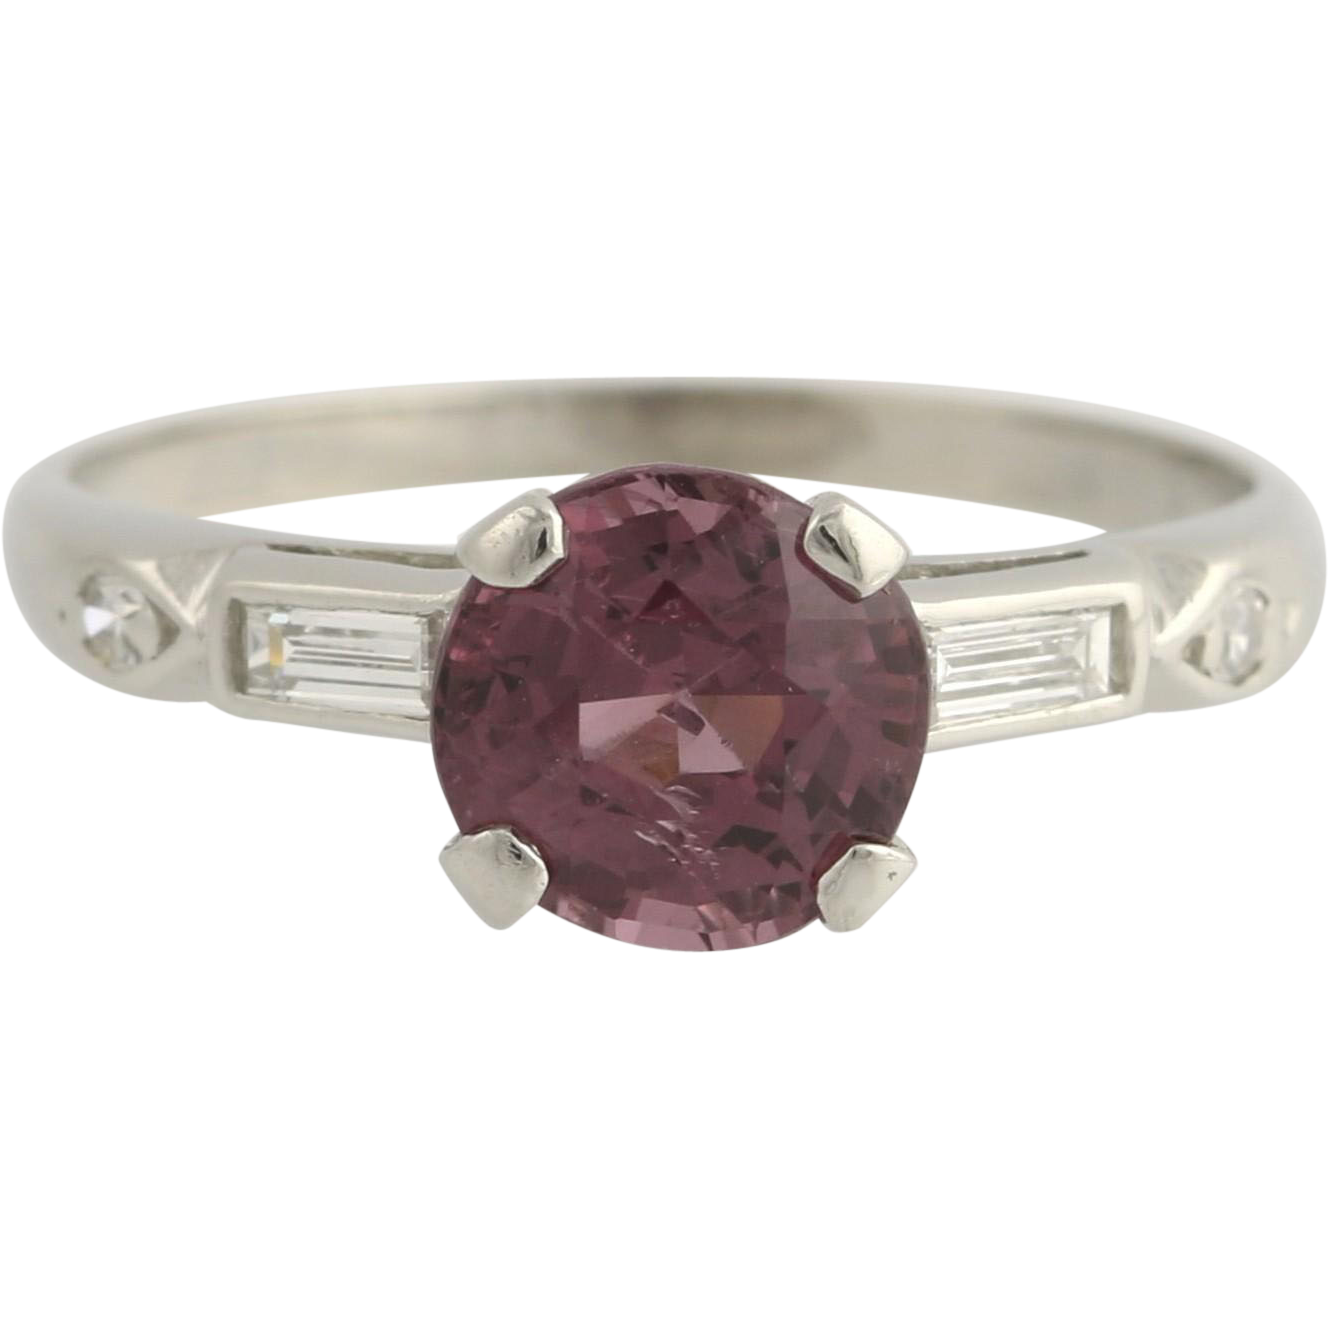 Spinel & Diamond Ring - Platinum Women's 4 Solitaire with Accents Fine 1.29ctw